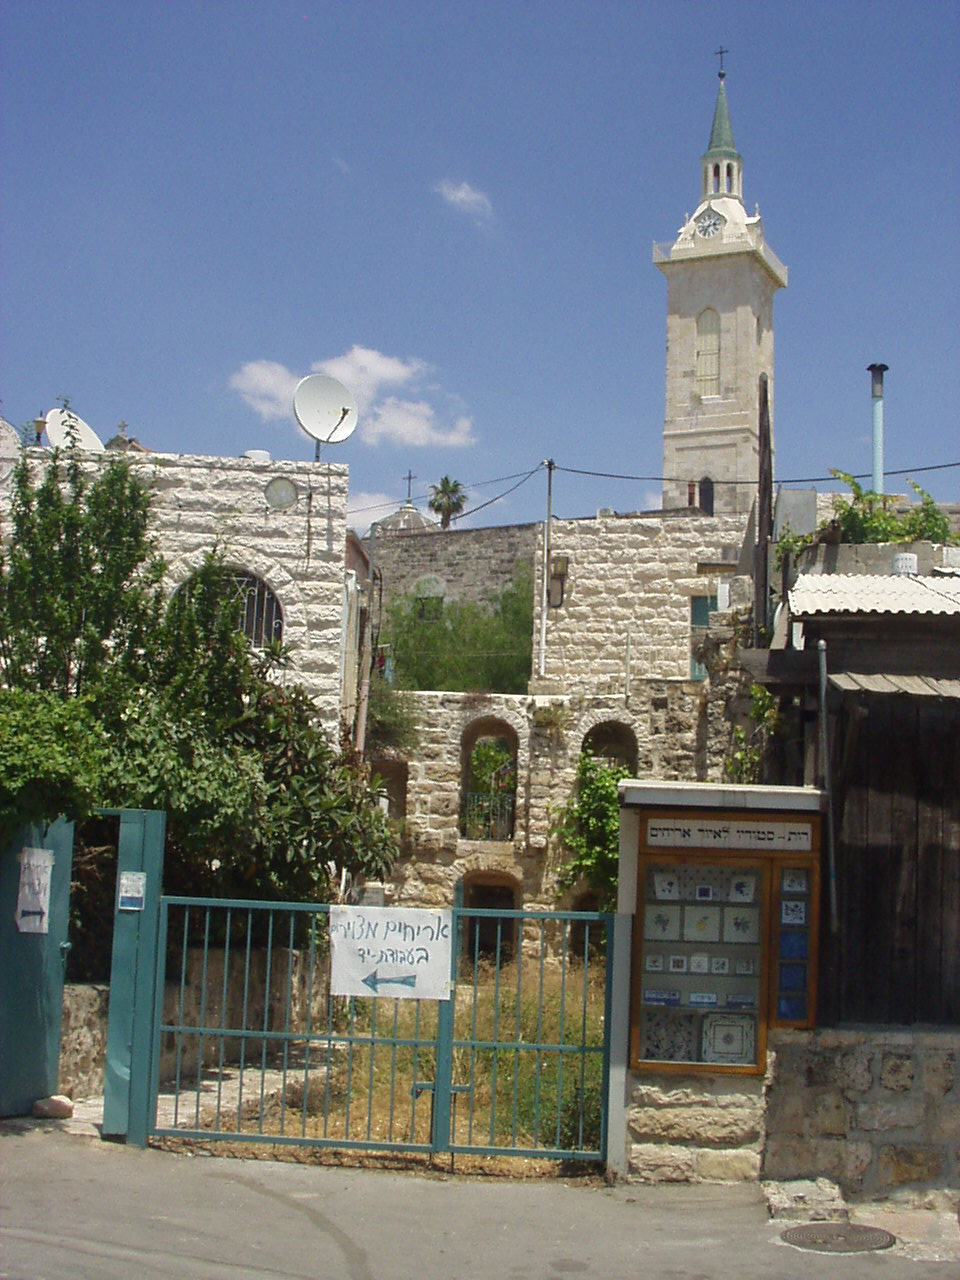 'Ayn Karim - عين كارم : One of Ein Karim's monasteries #3, June 2002